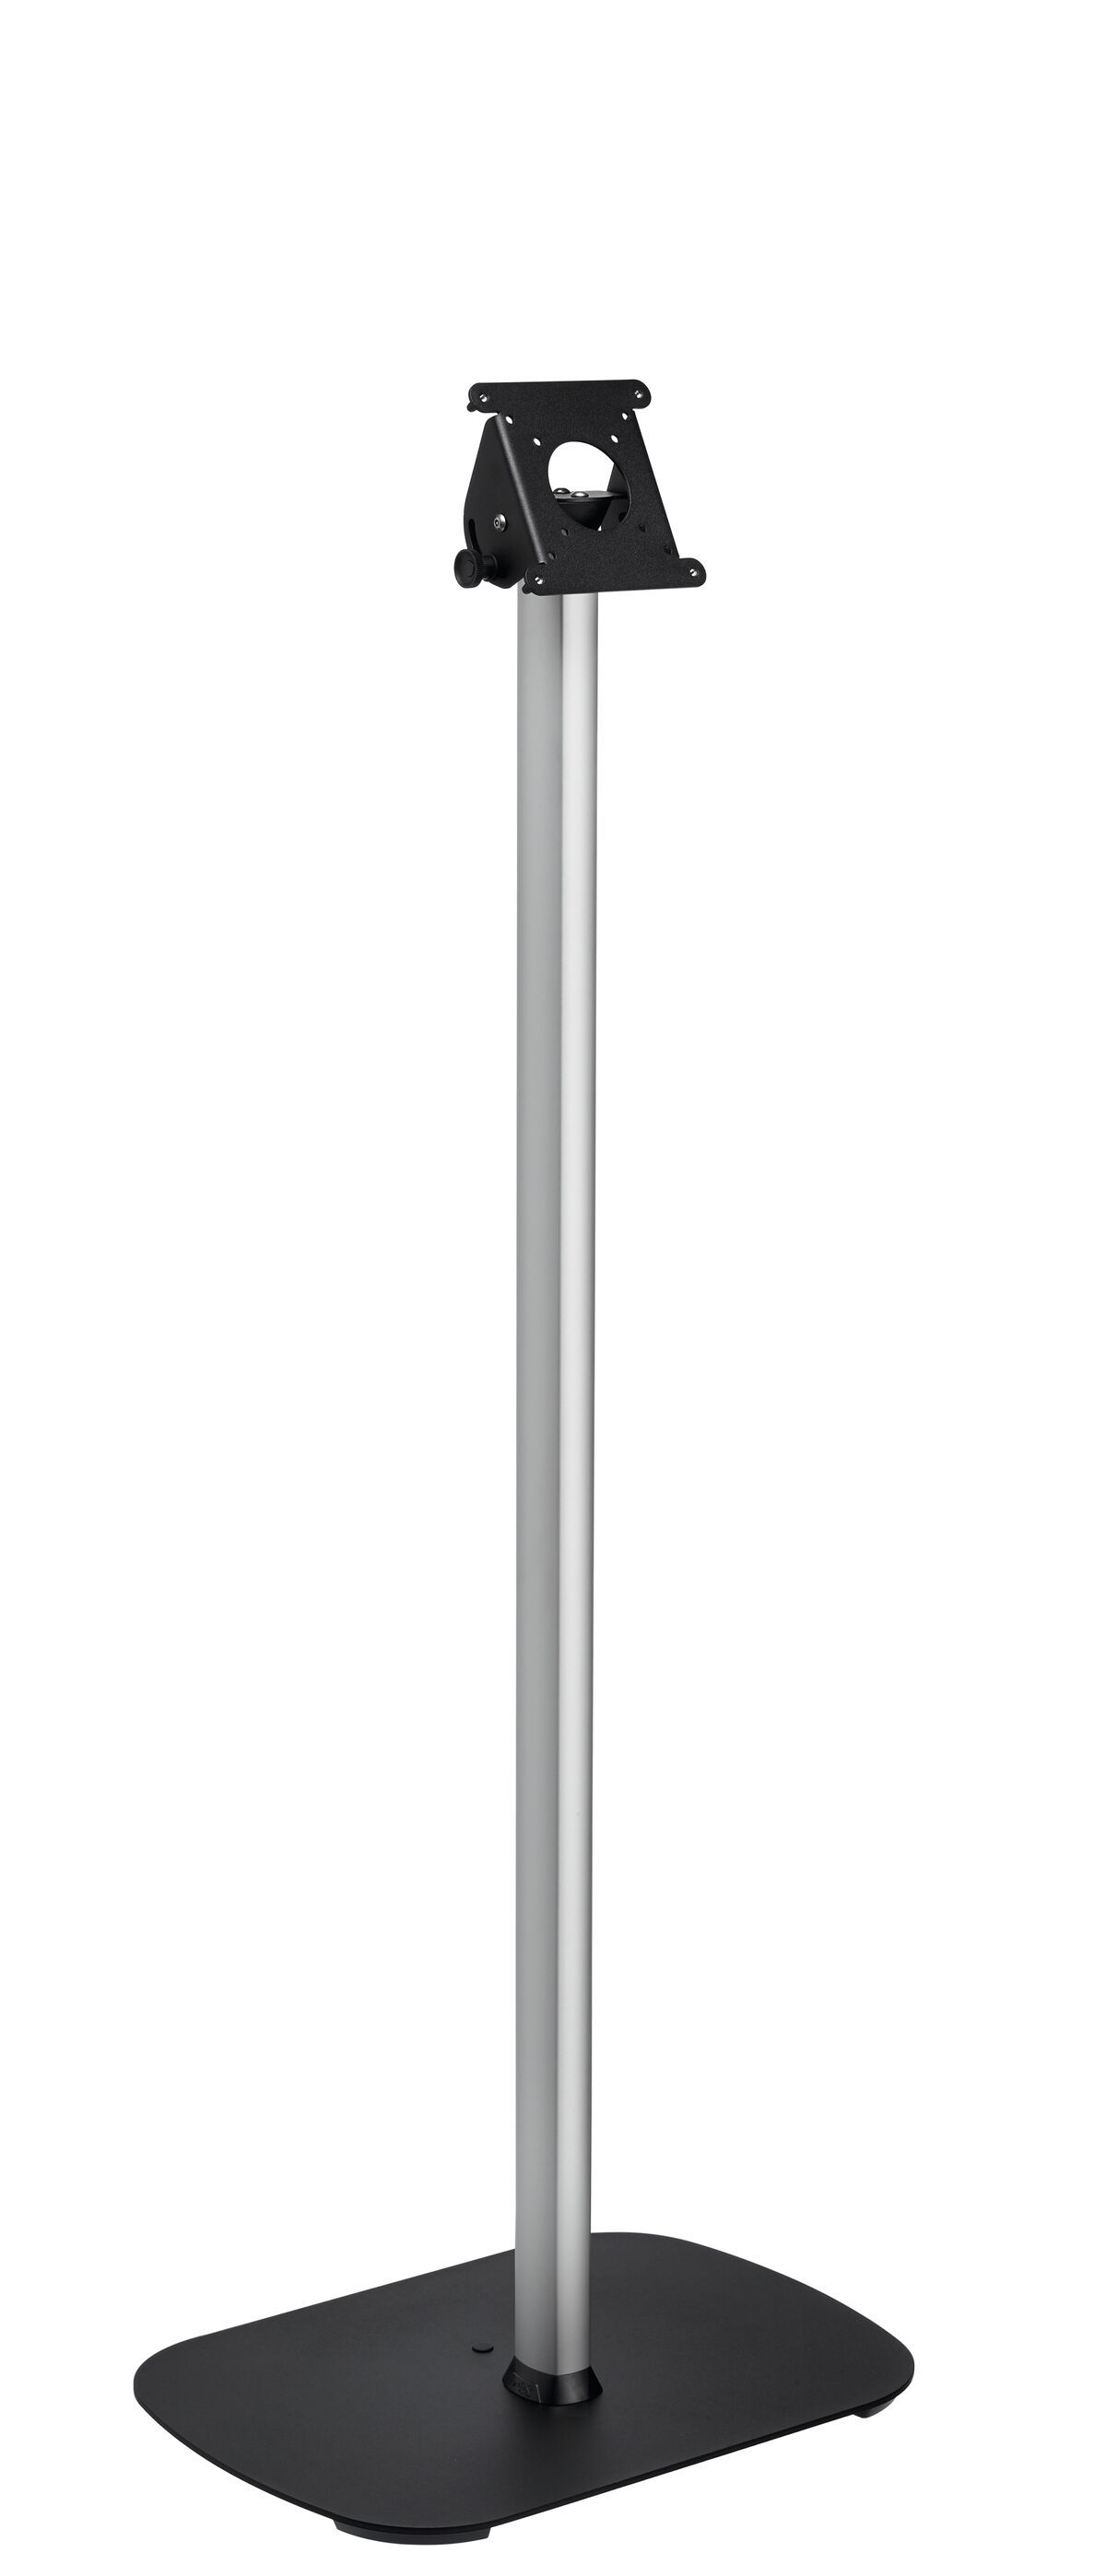 Vogel's PTA 3101 Floor stand - Product